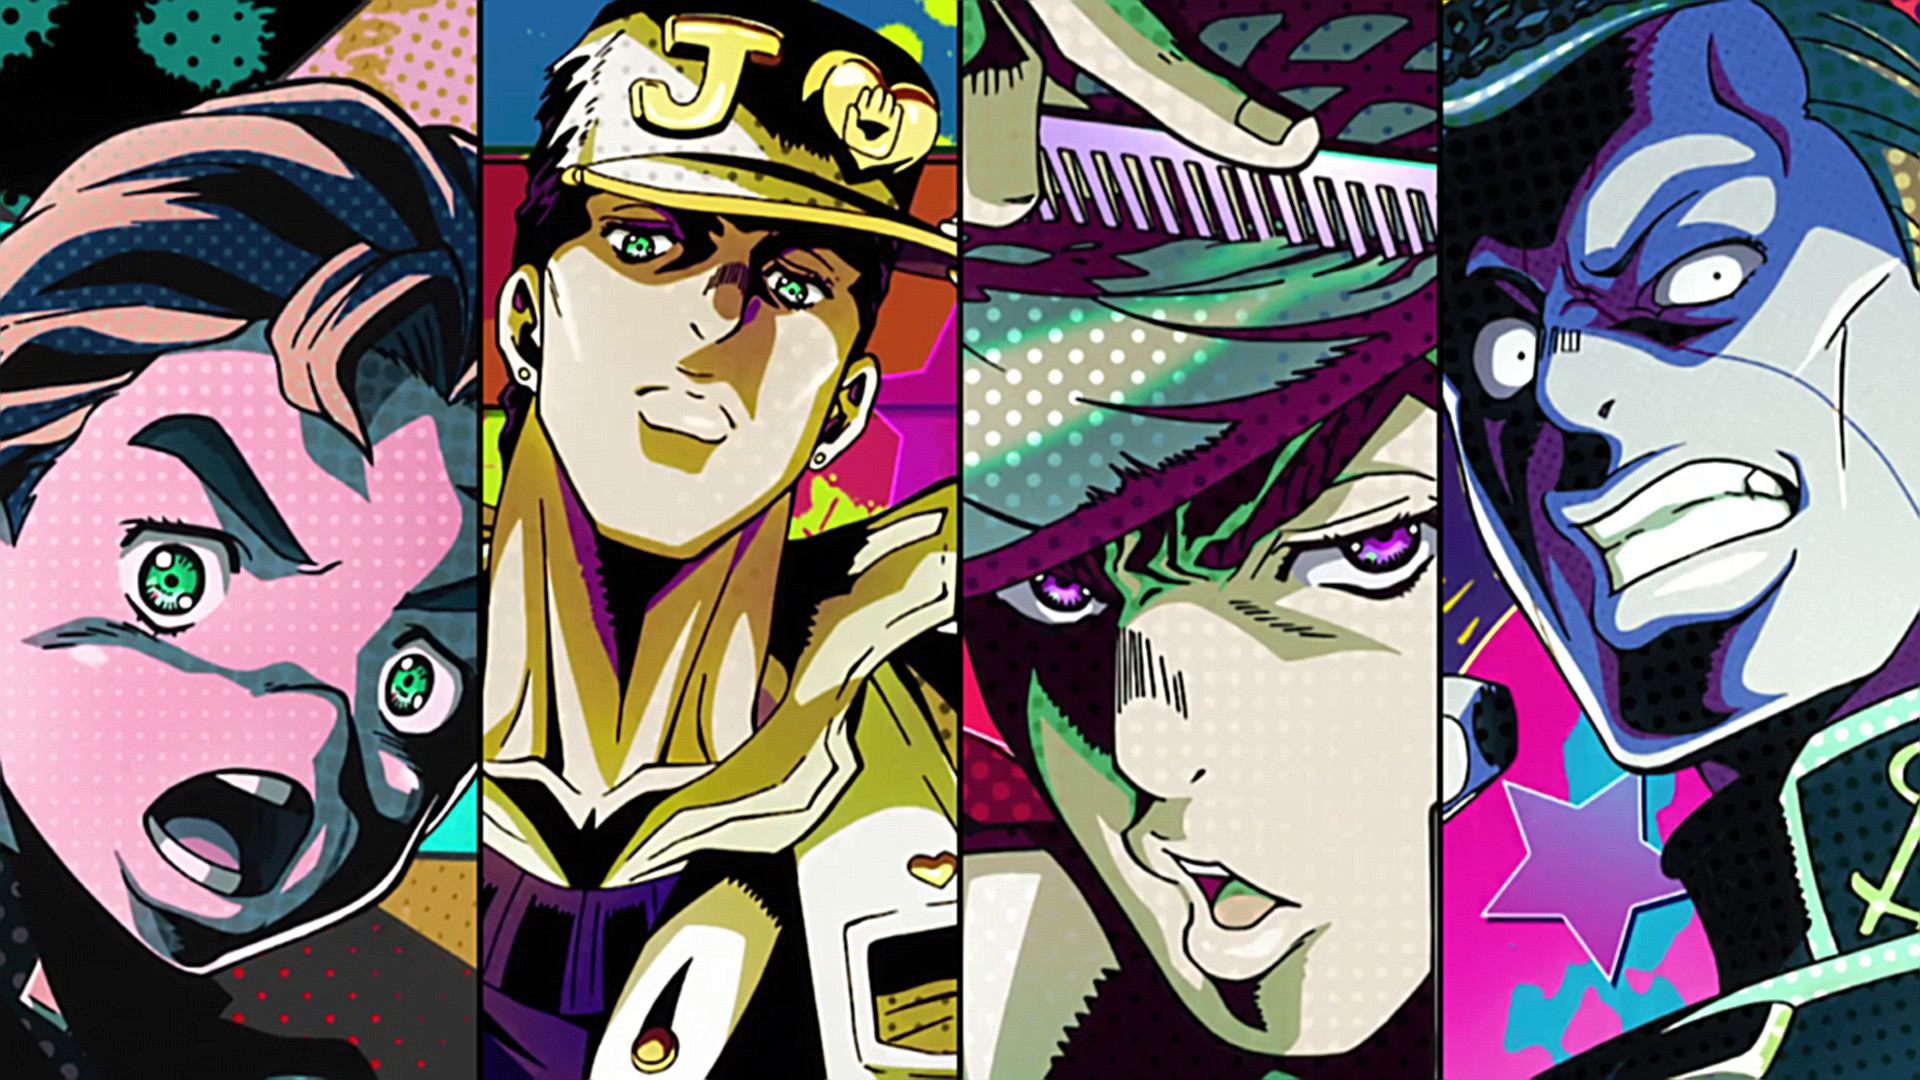 1920x1080 879 Jojo's Bizarre Adventure HD Wallpapers | Backgrounds .